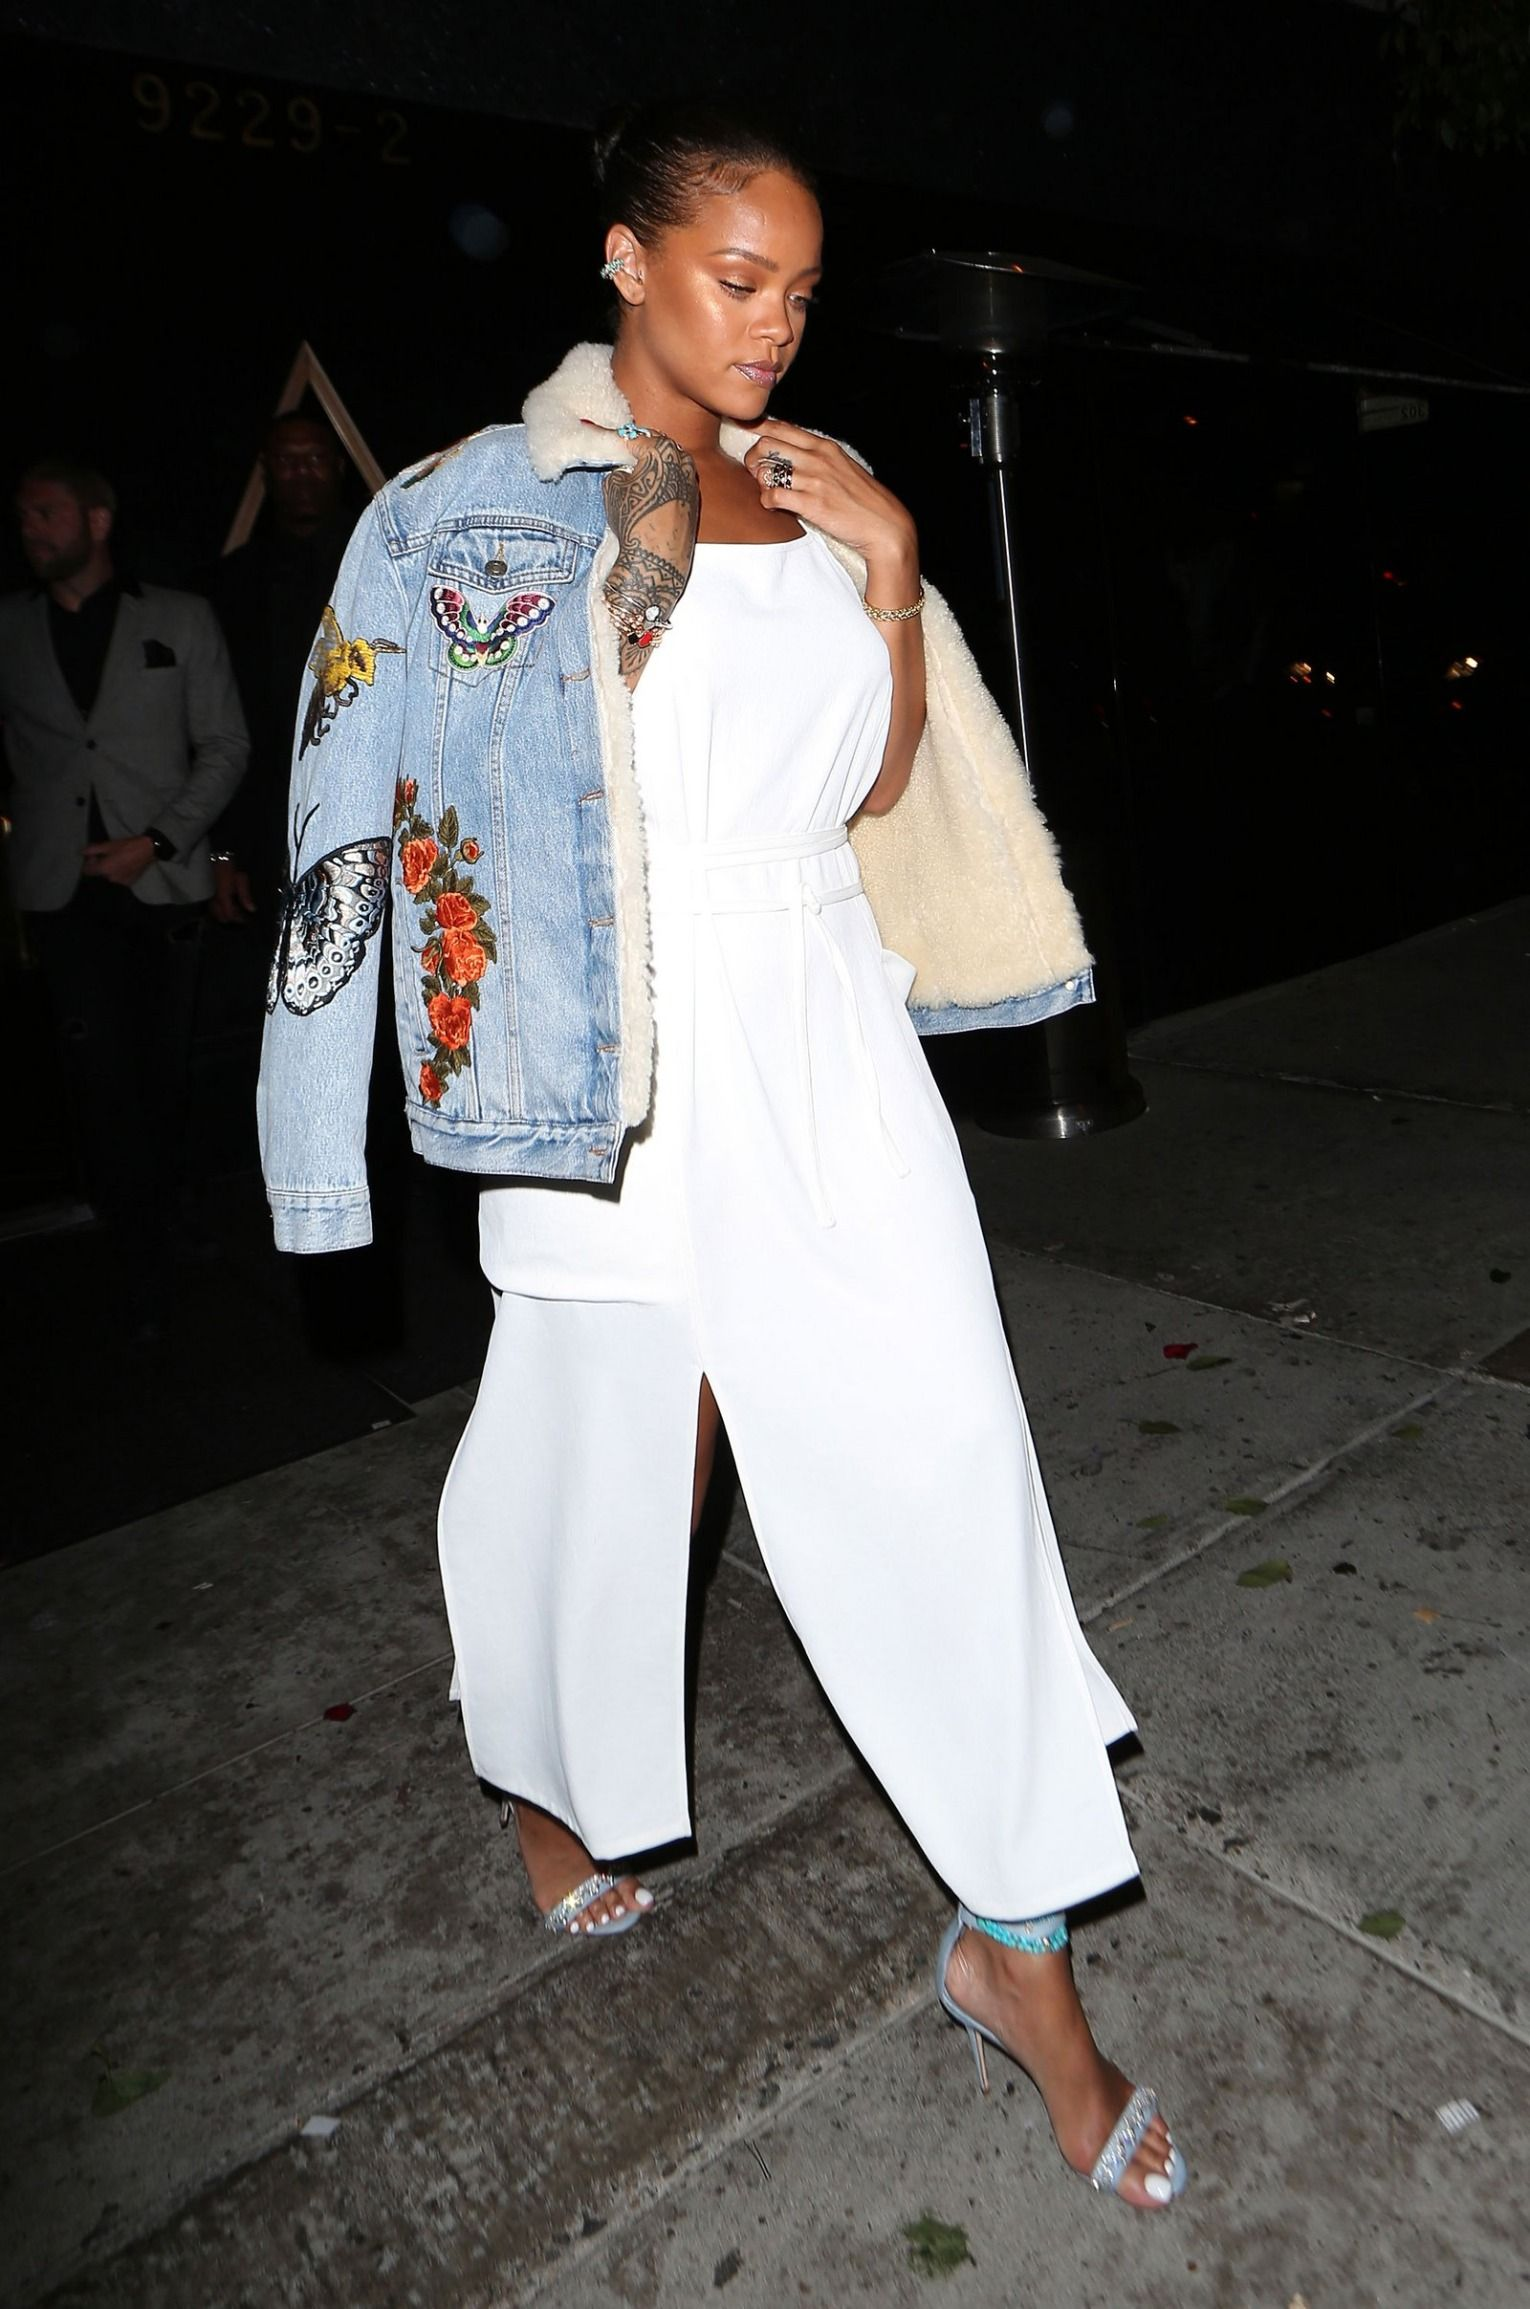 b75966db6d39 Rihanna s Statement-Making Denim Jacket Just Upped the Street Style ...